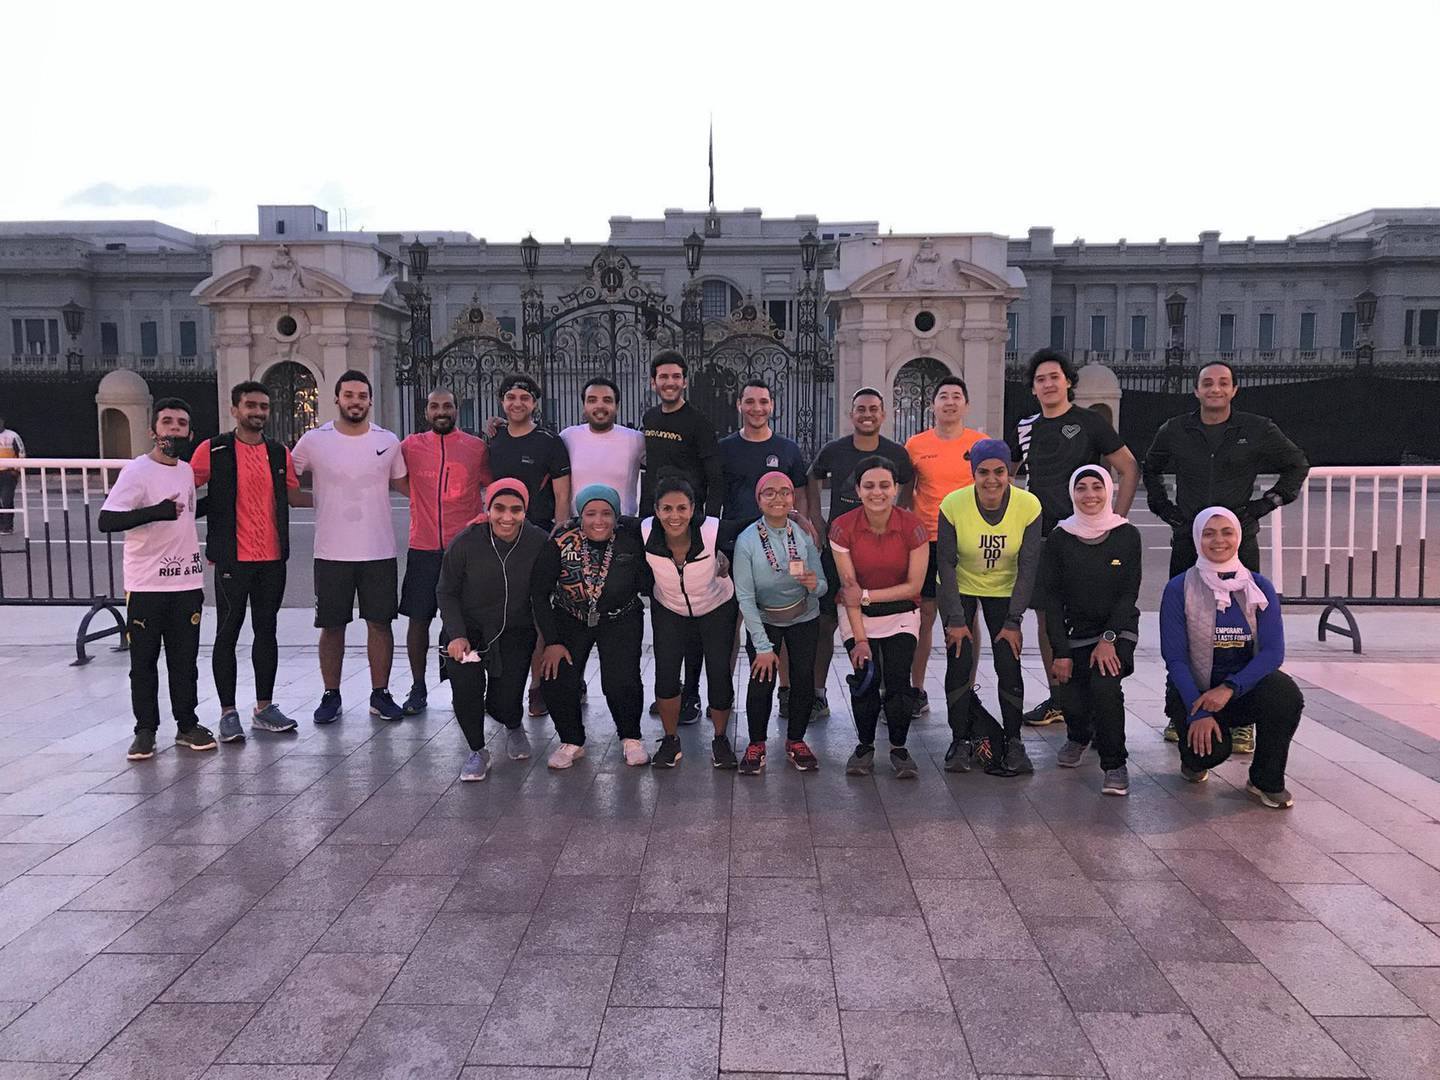 Zamalek Early Risers in front of Abdeen Palace in downtown Cairo on their weekly 5:30am run. Courtesy Abdelhamid Mustafa